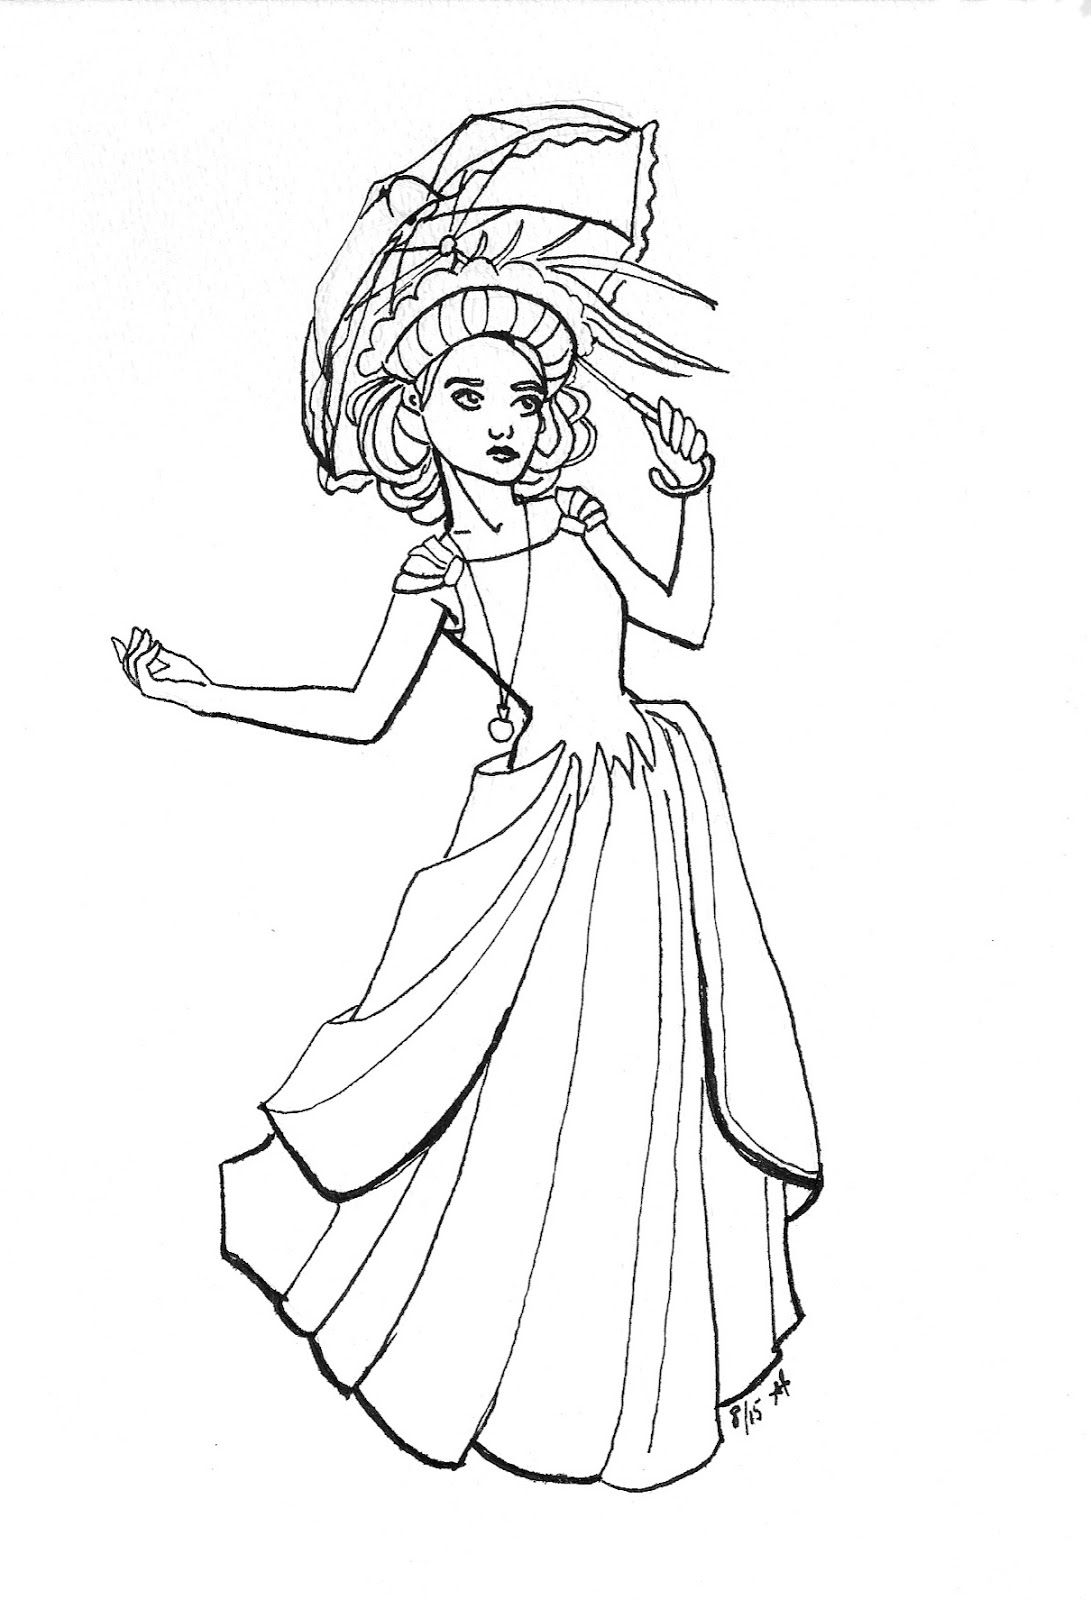 Coloring pages rainy day - Rainy Day